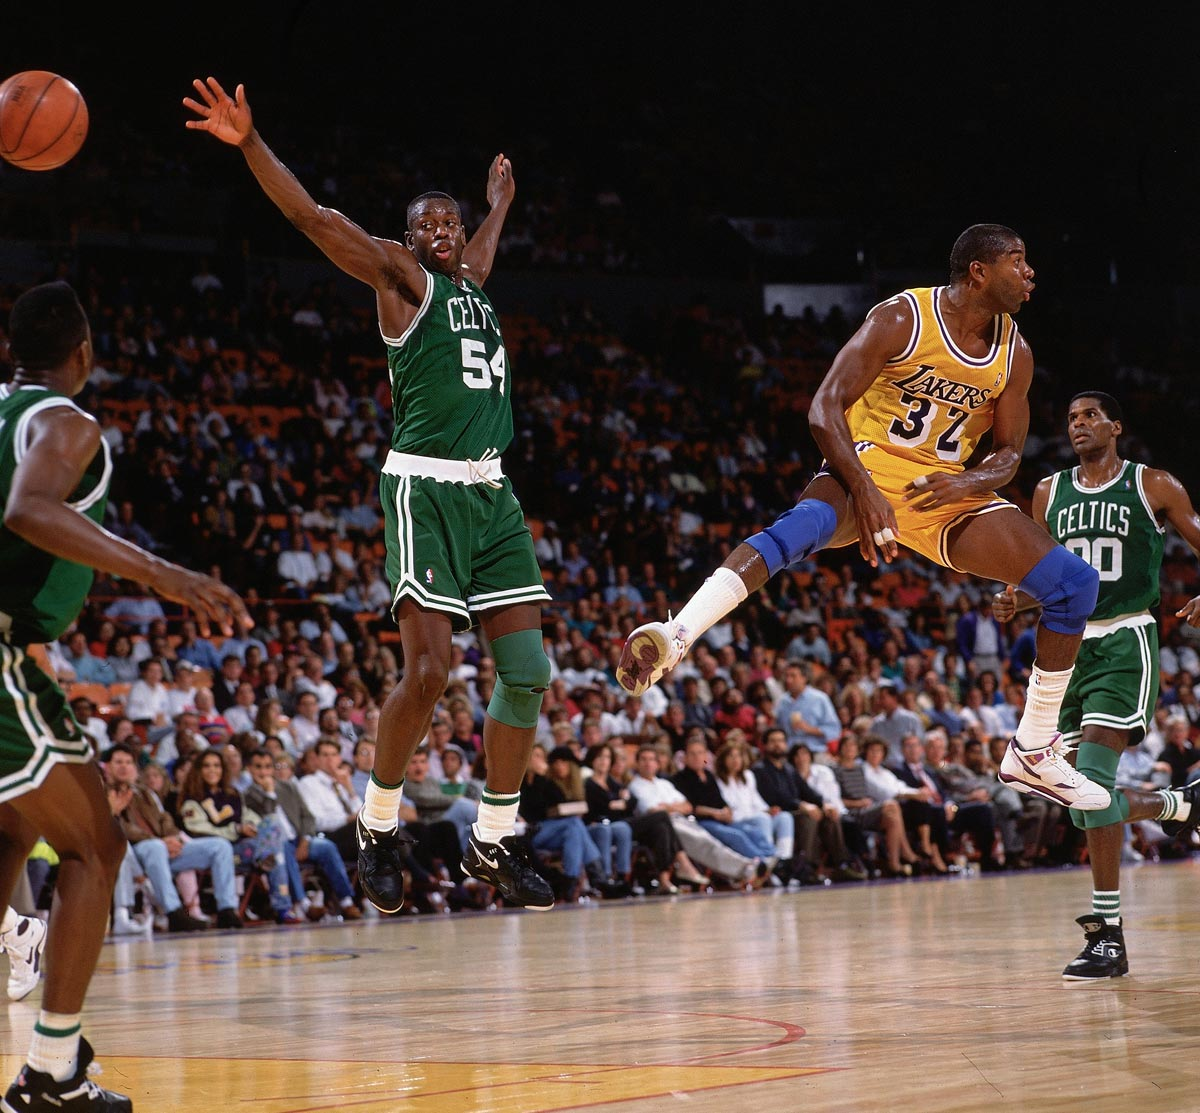 Lakers vs. Celtics, Oct. 22, 1991 | Lakers point guard Magic Johnson tosses a no-look pass past Celtics forward Ed Pinckney during a preseason game. About two weeks later, Johnson announced he was HIV-positive and retiring from basketball.